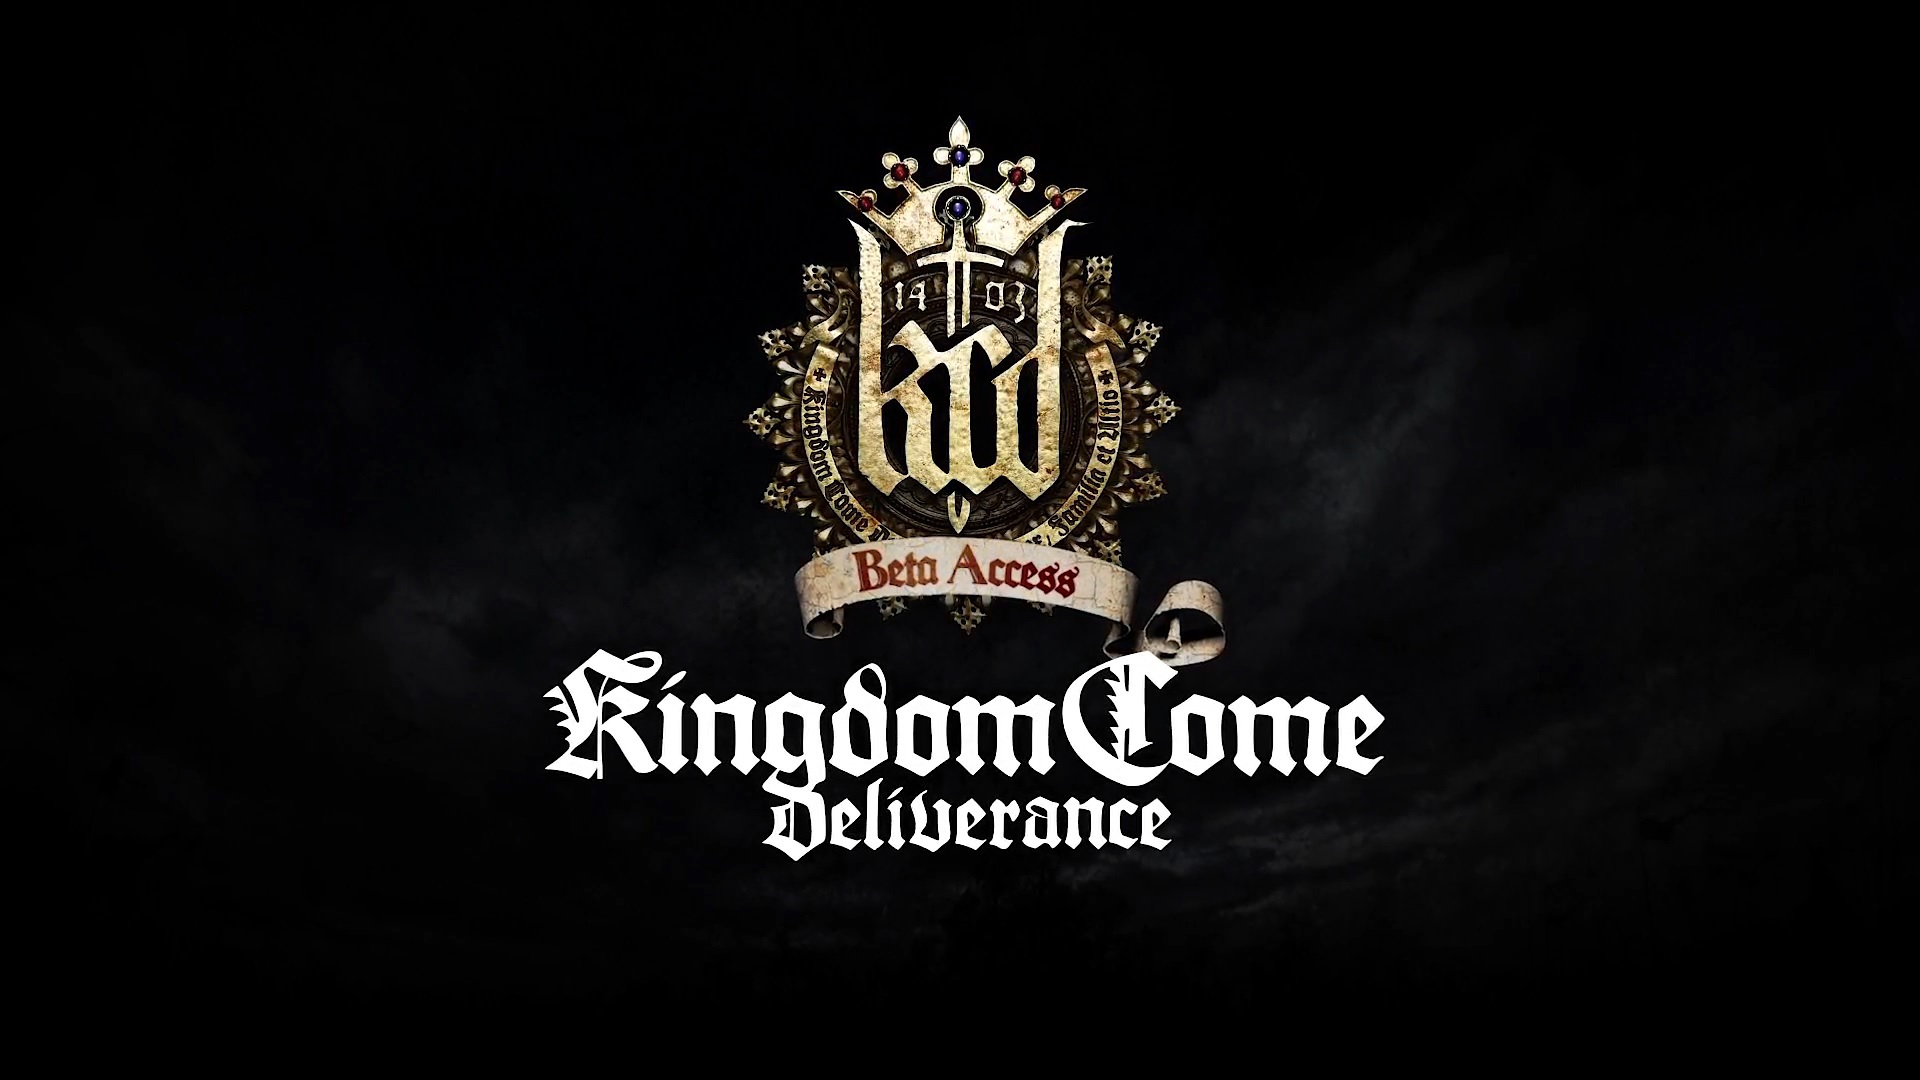 Kingdom Come Deliverance High Quality Wallpapers